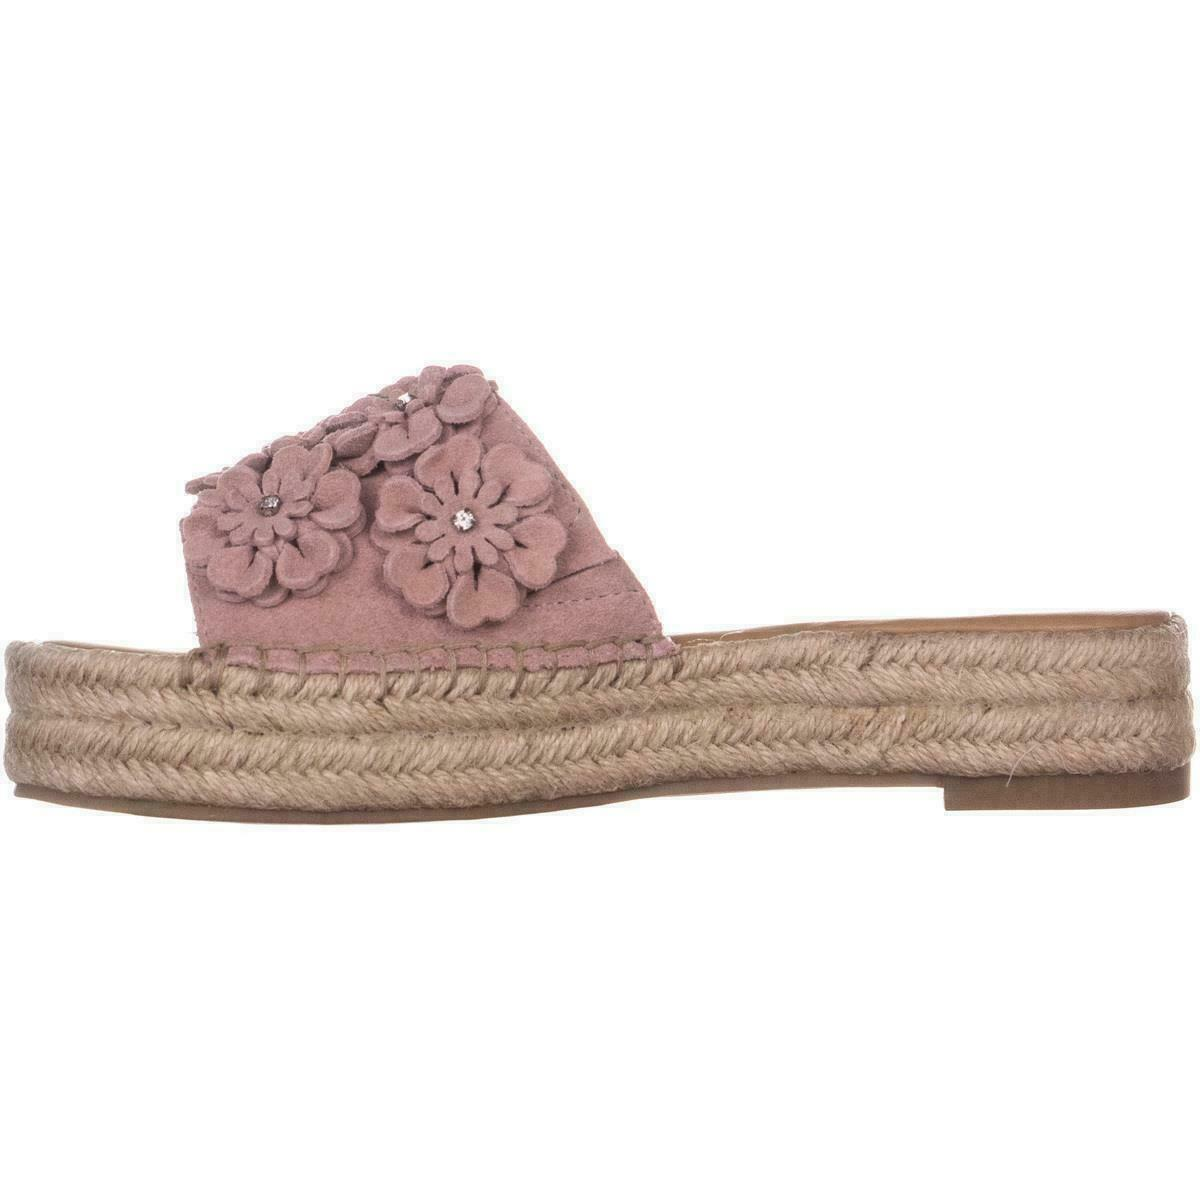 Carlos by Carlos Santana Chandler Sandals Pink Blush, Size 5 M